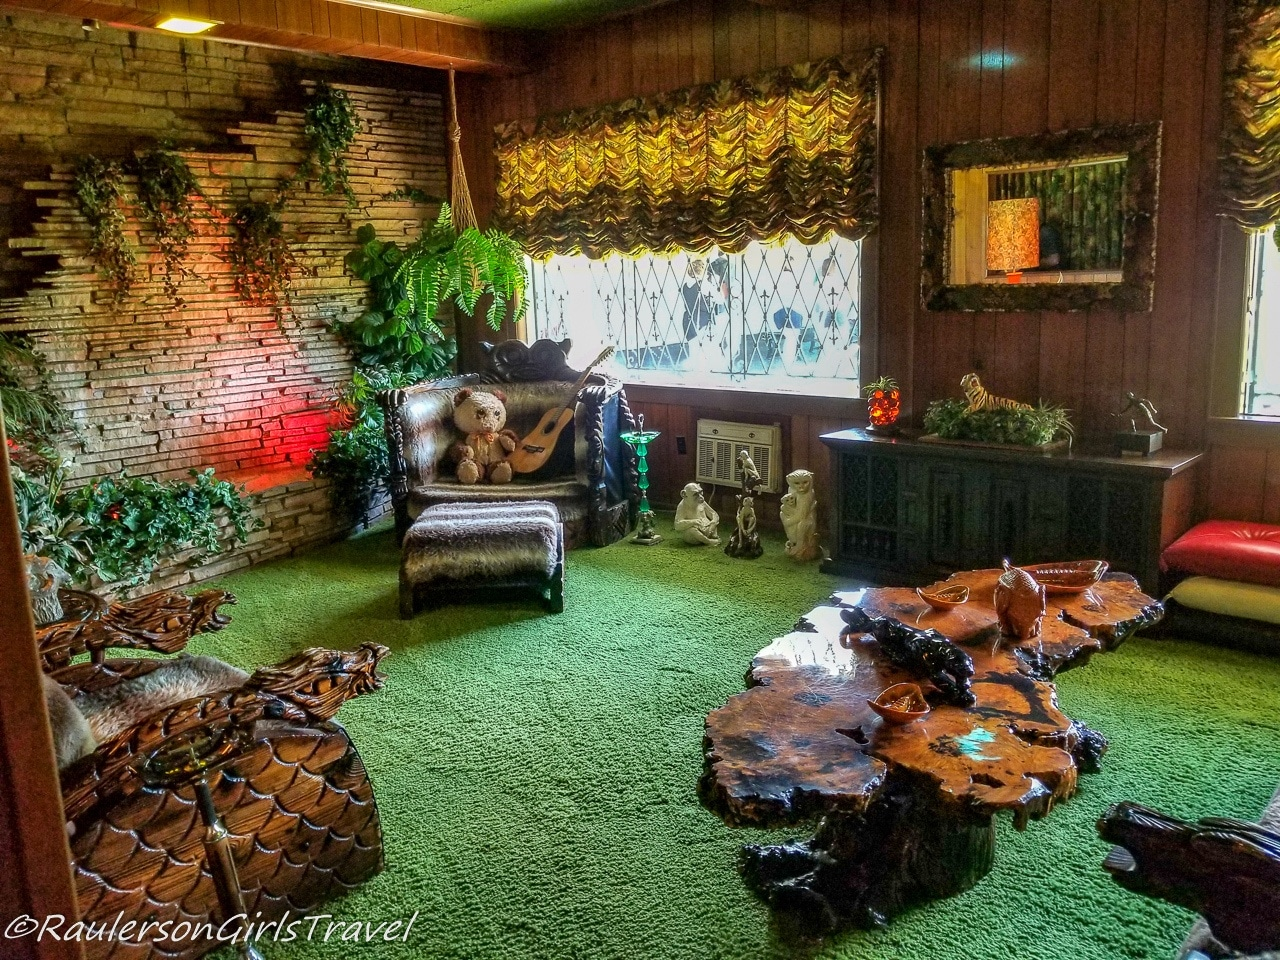 Jungle Room with teddy bear and guitar